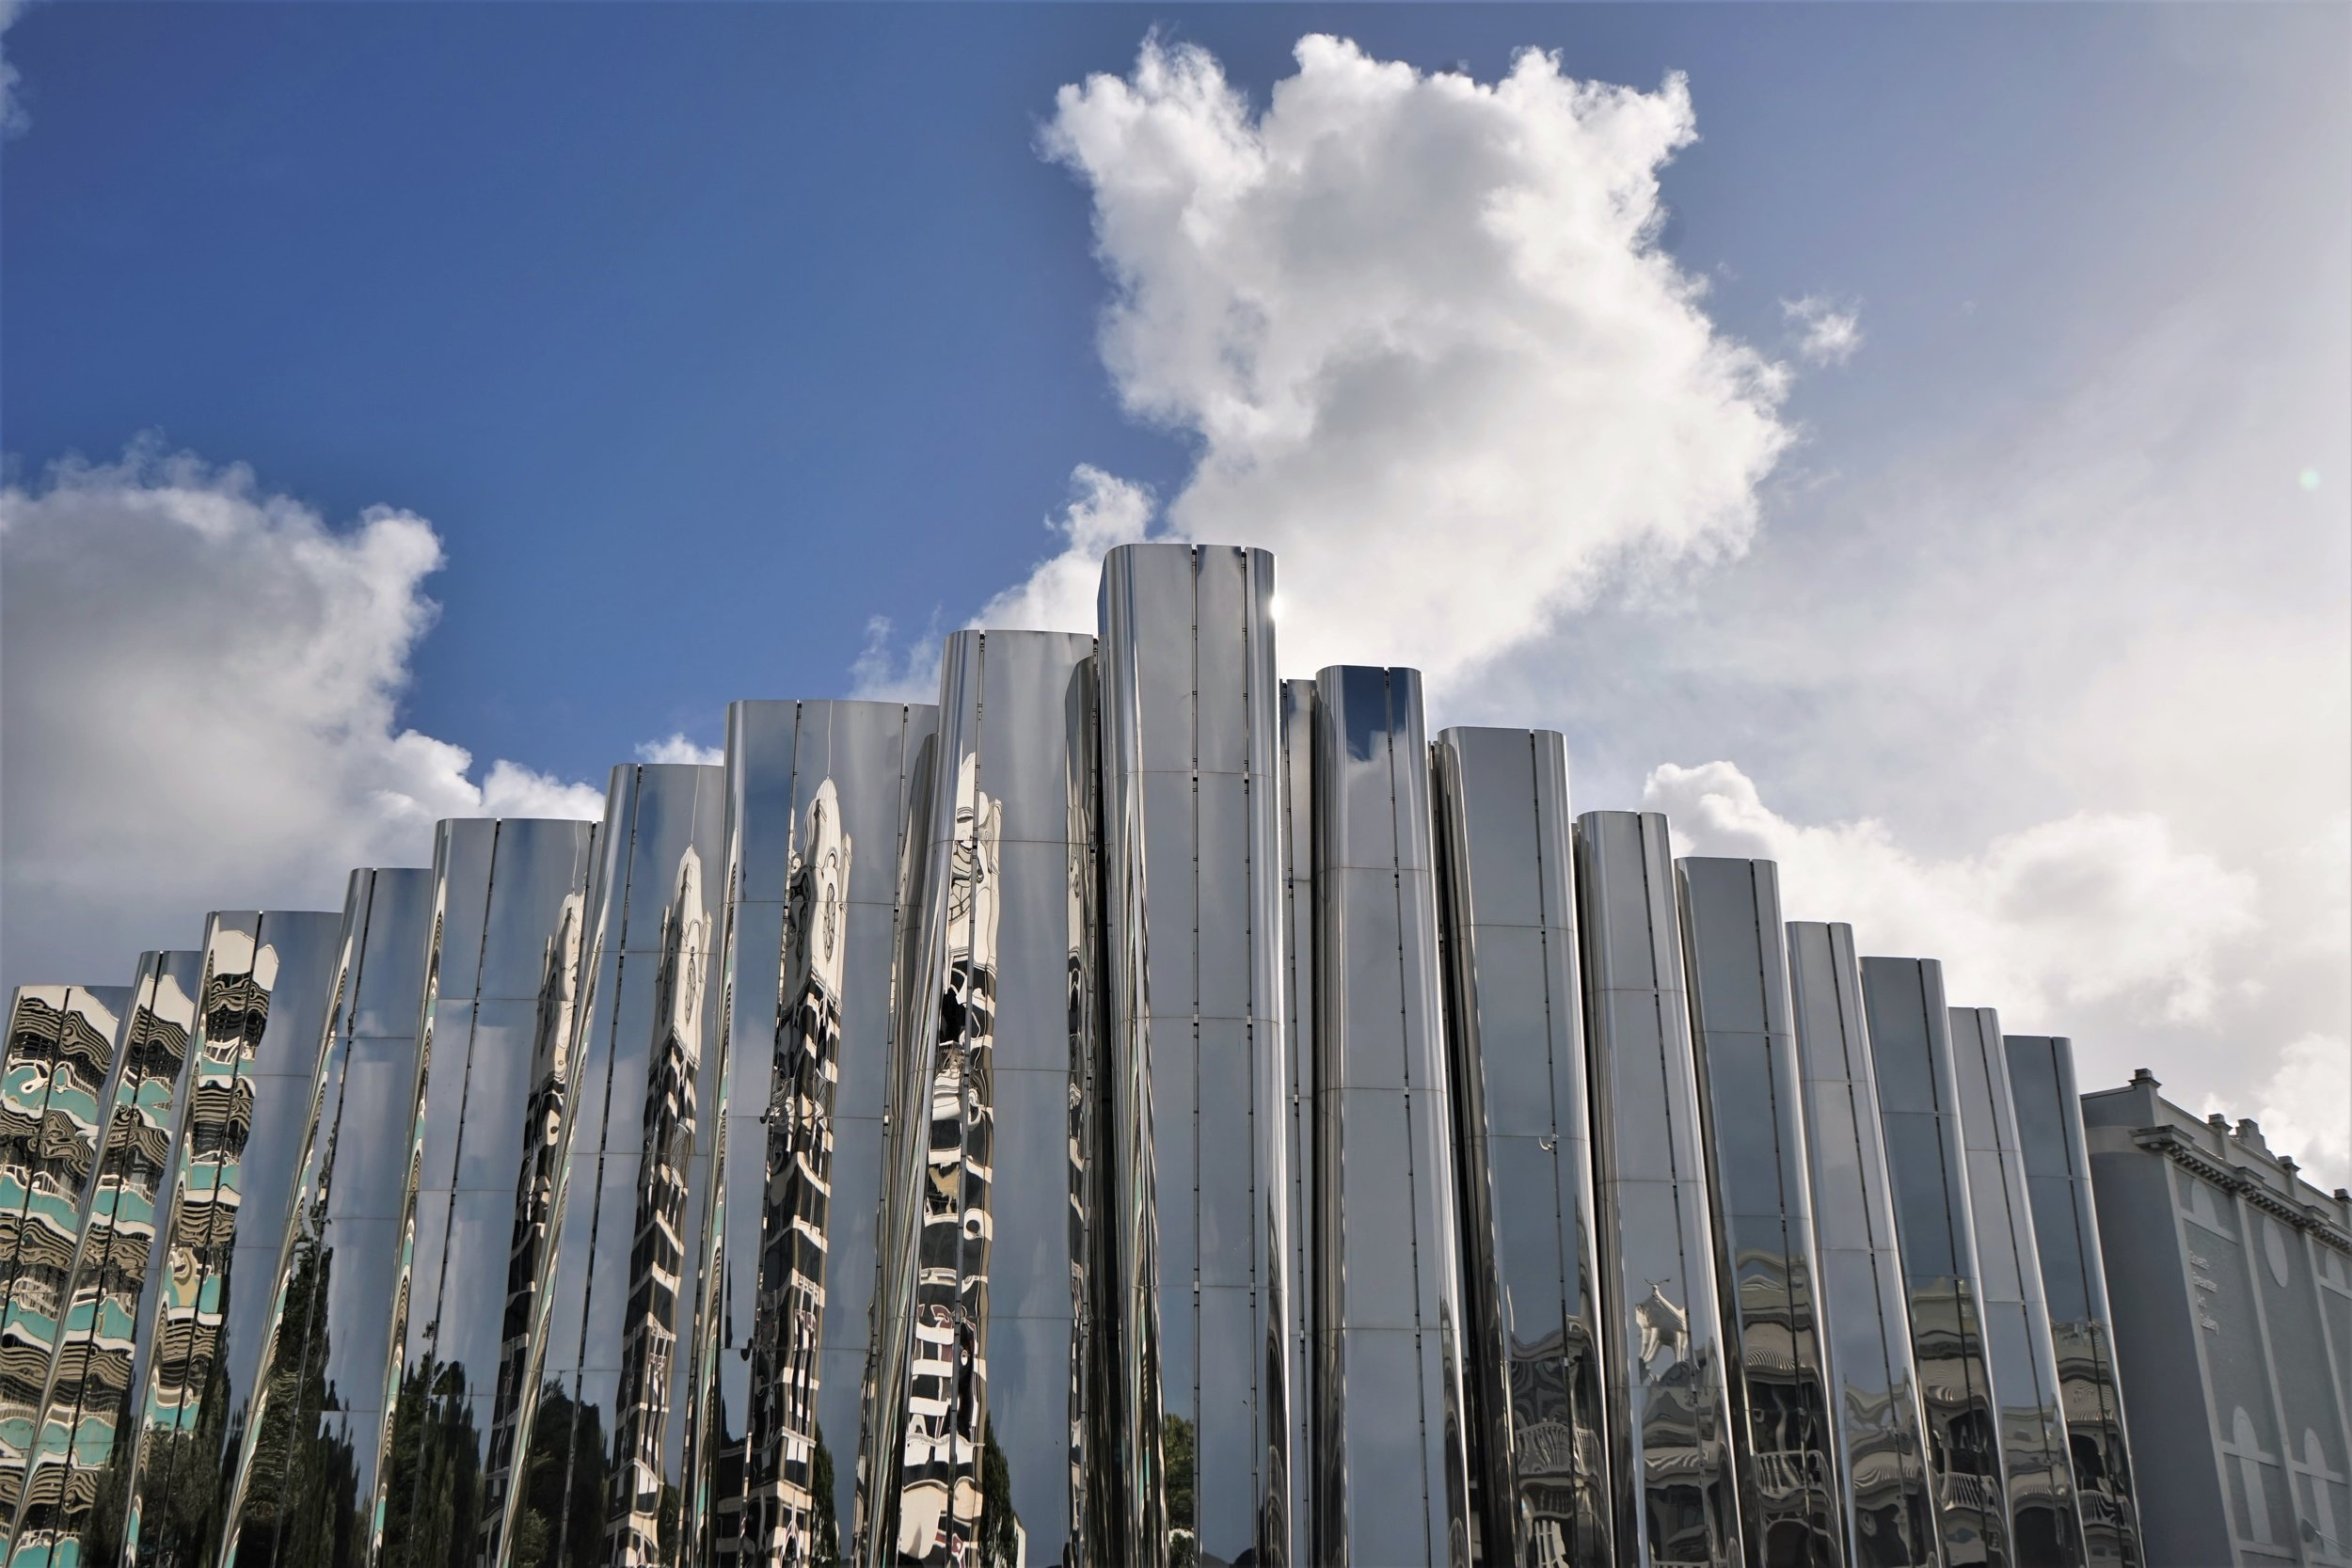 The Len Lye Centre is one of the best things to see in New Plymouth if you are interested in architecture.